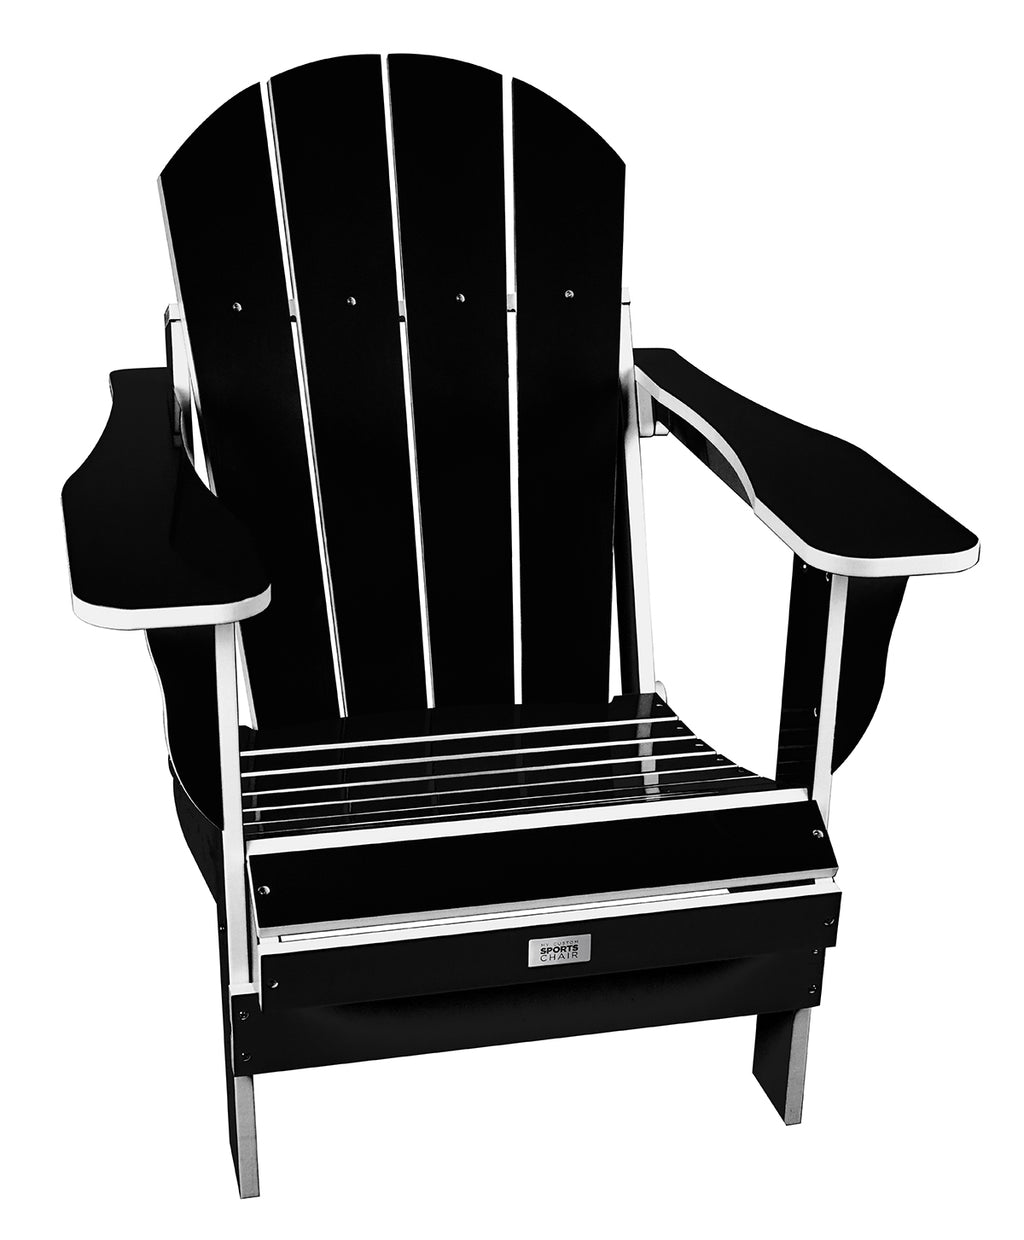 TL Black/White Folding Chair